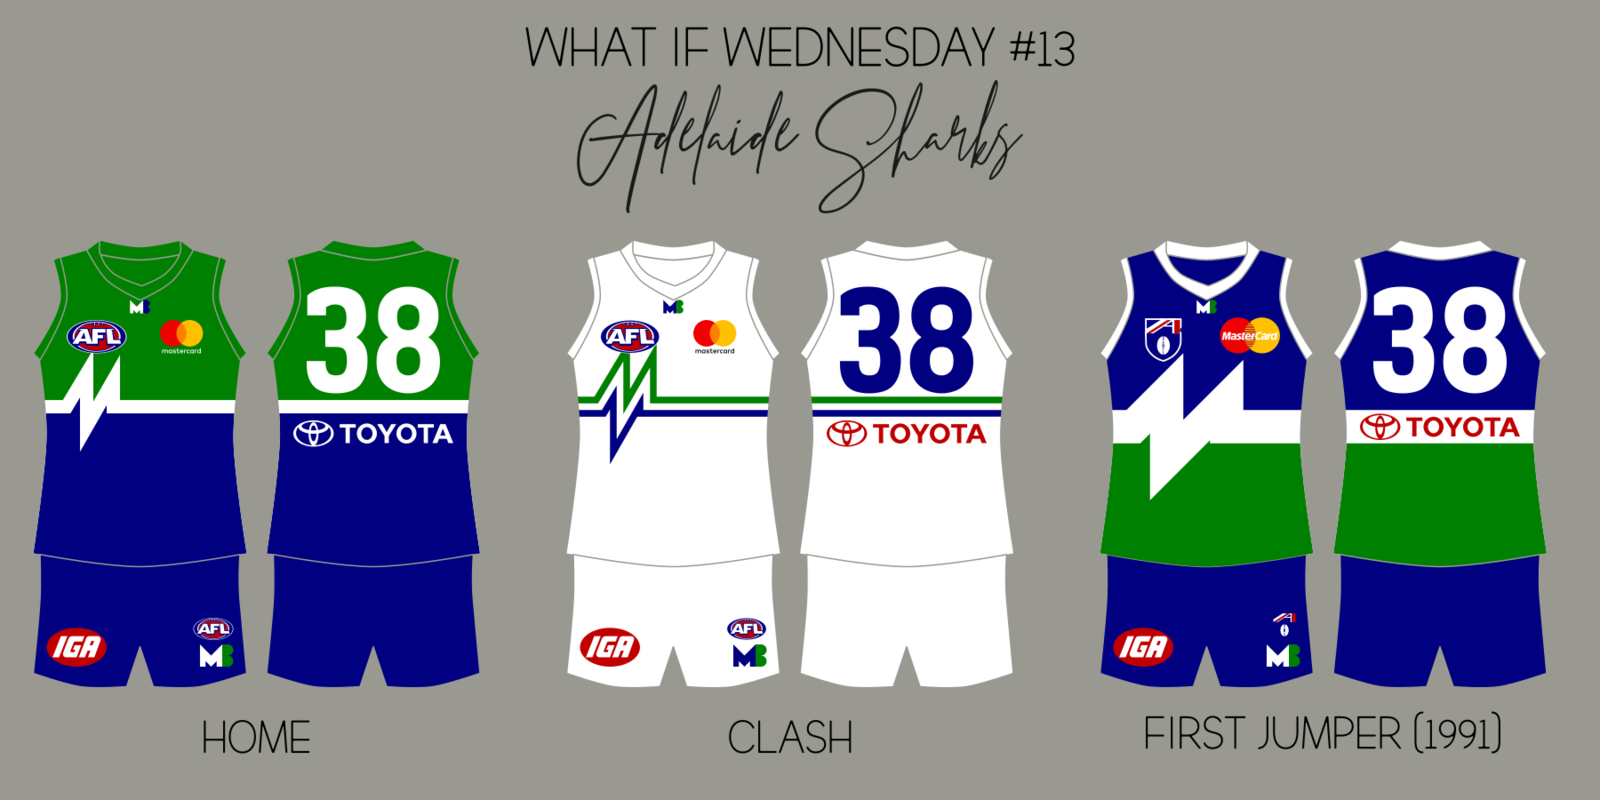 13 Adelaide Sharks.png